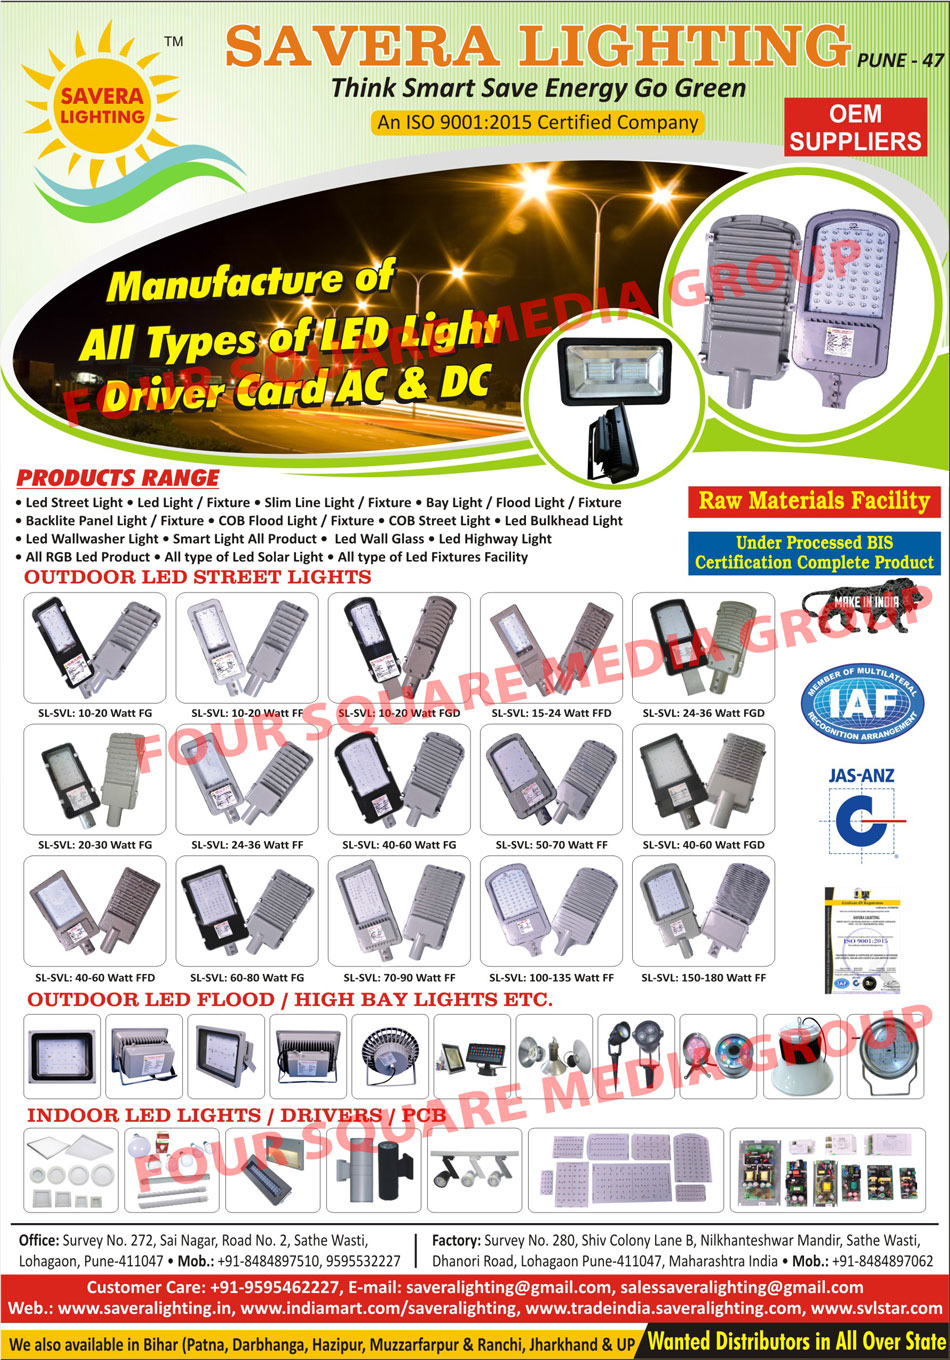 AC Led Light Driver Card, DC Led Light Driver Card, Led Street Lights, Led Lights, Led Fixtures, Slim Line Lights, Slim Line Fixture, Bay Lights, Flood Lights, Bay Light Fixtures, Flood Light Fixtures, Backlite Panel Lights, Backlite Panel Light, COB Flood Lights, COB Flood Light Fixtures, COB Street Lights, Led Bulkhead Lights, Led Wall Washer Lights, Smart Lights, Led Wall Glass, Led Highbay Lights, RGB Led Products, Led Solar Lights, Outdoor Led Street Lights, Outdoor Led Flood Lights, Outdoor Led High Bay Lights, Indoor Led Lights, Led Drivers, Led PCB, Led Printed Circuit Boards, Led Lights